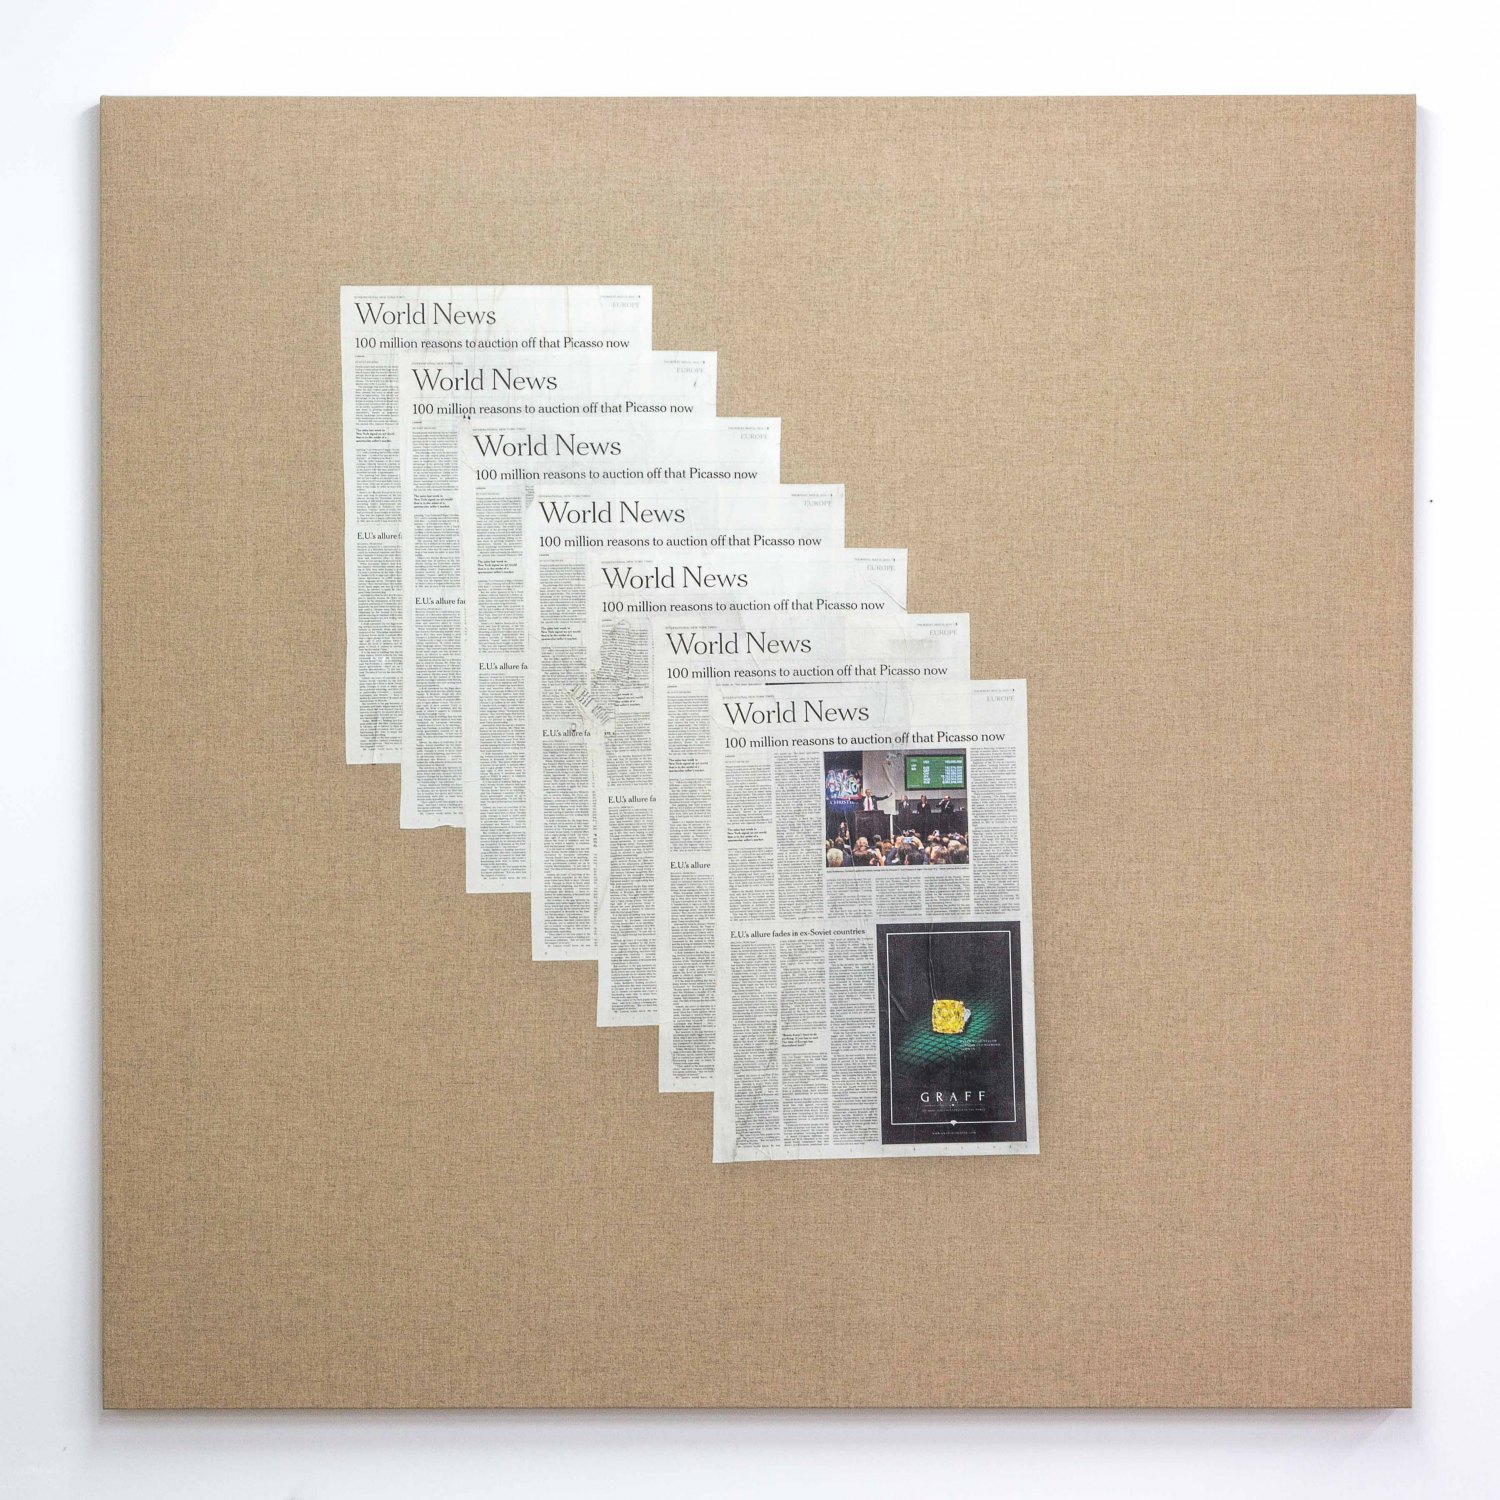 Matias Faldbakken Untitled (Canvas #107), 2015 Newspaper print on Belgian linen, wooden stretcher, 152.5 × 152.5 × 3.2 cm